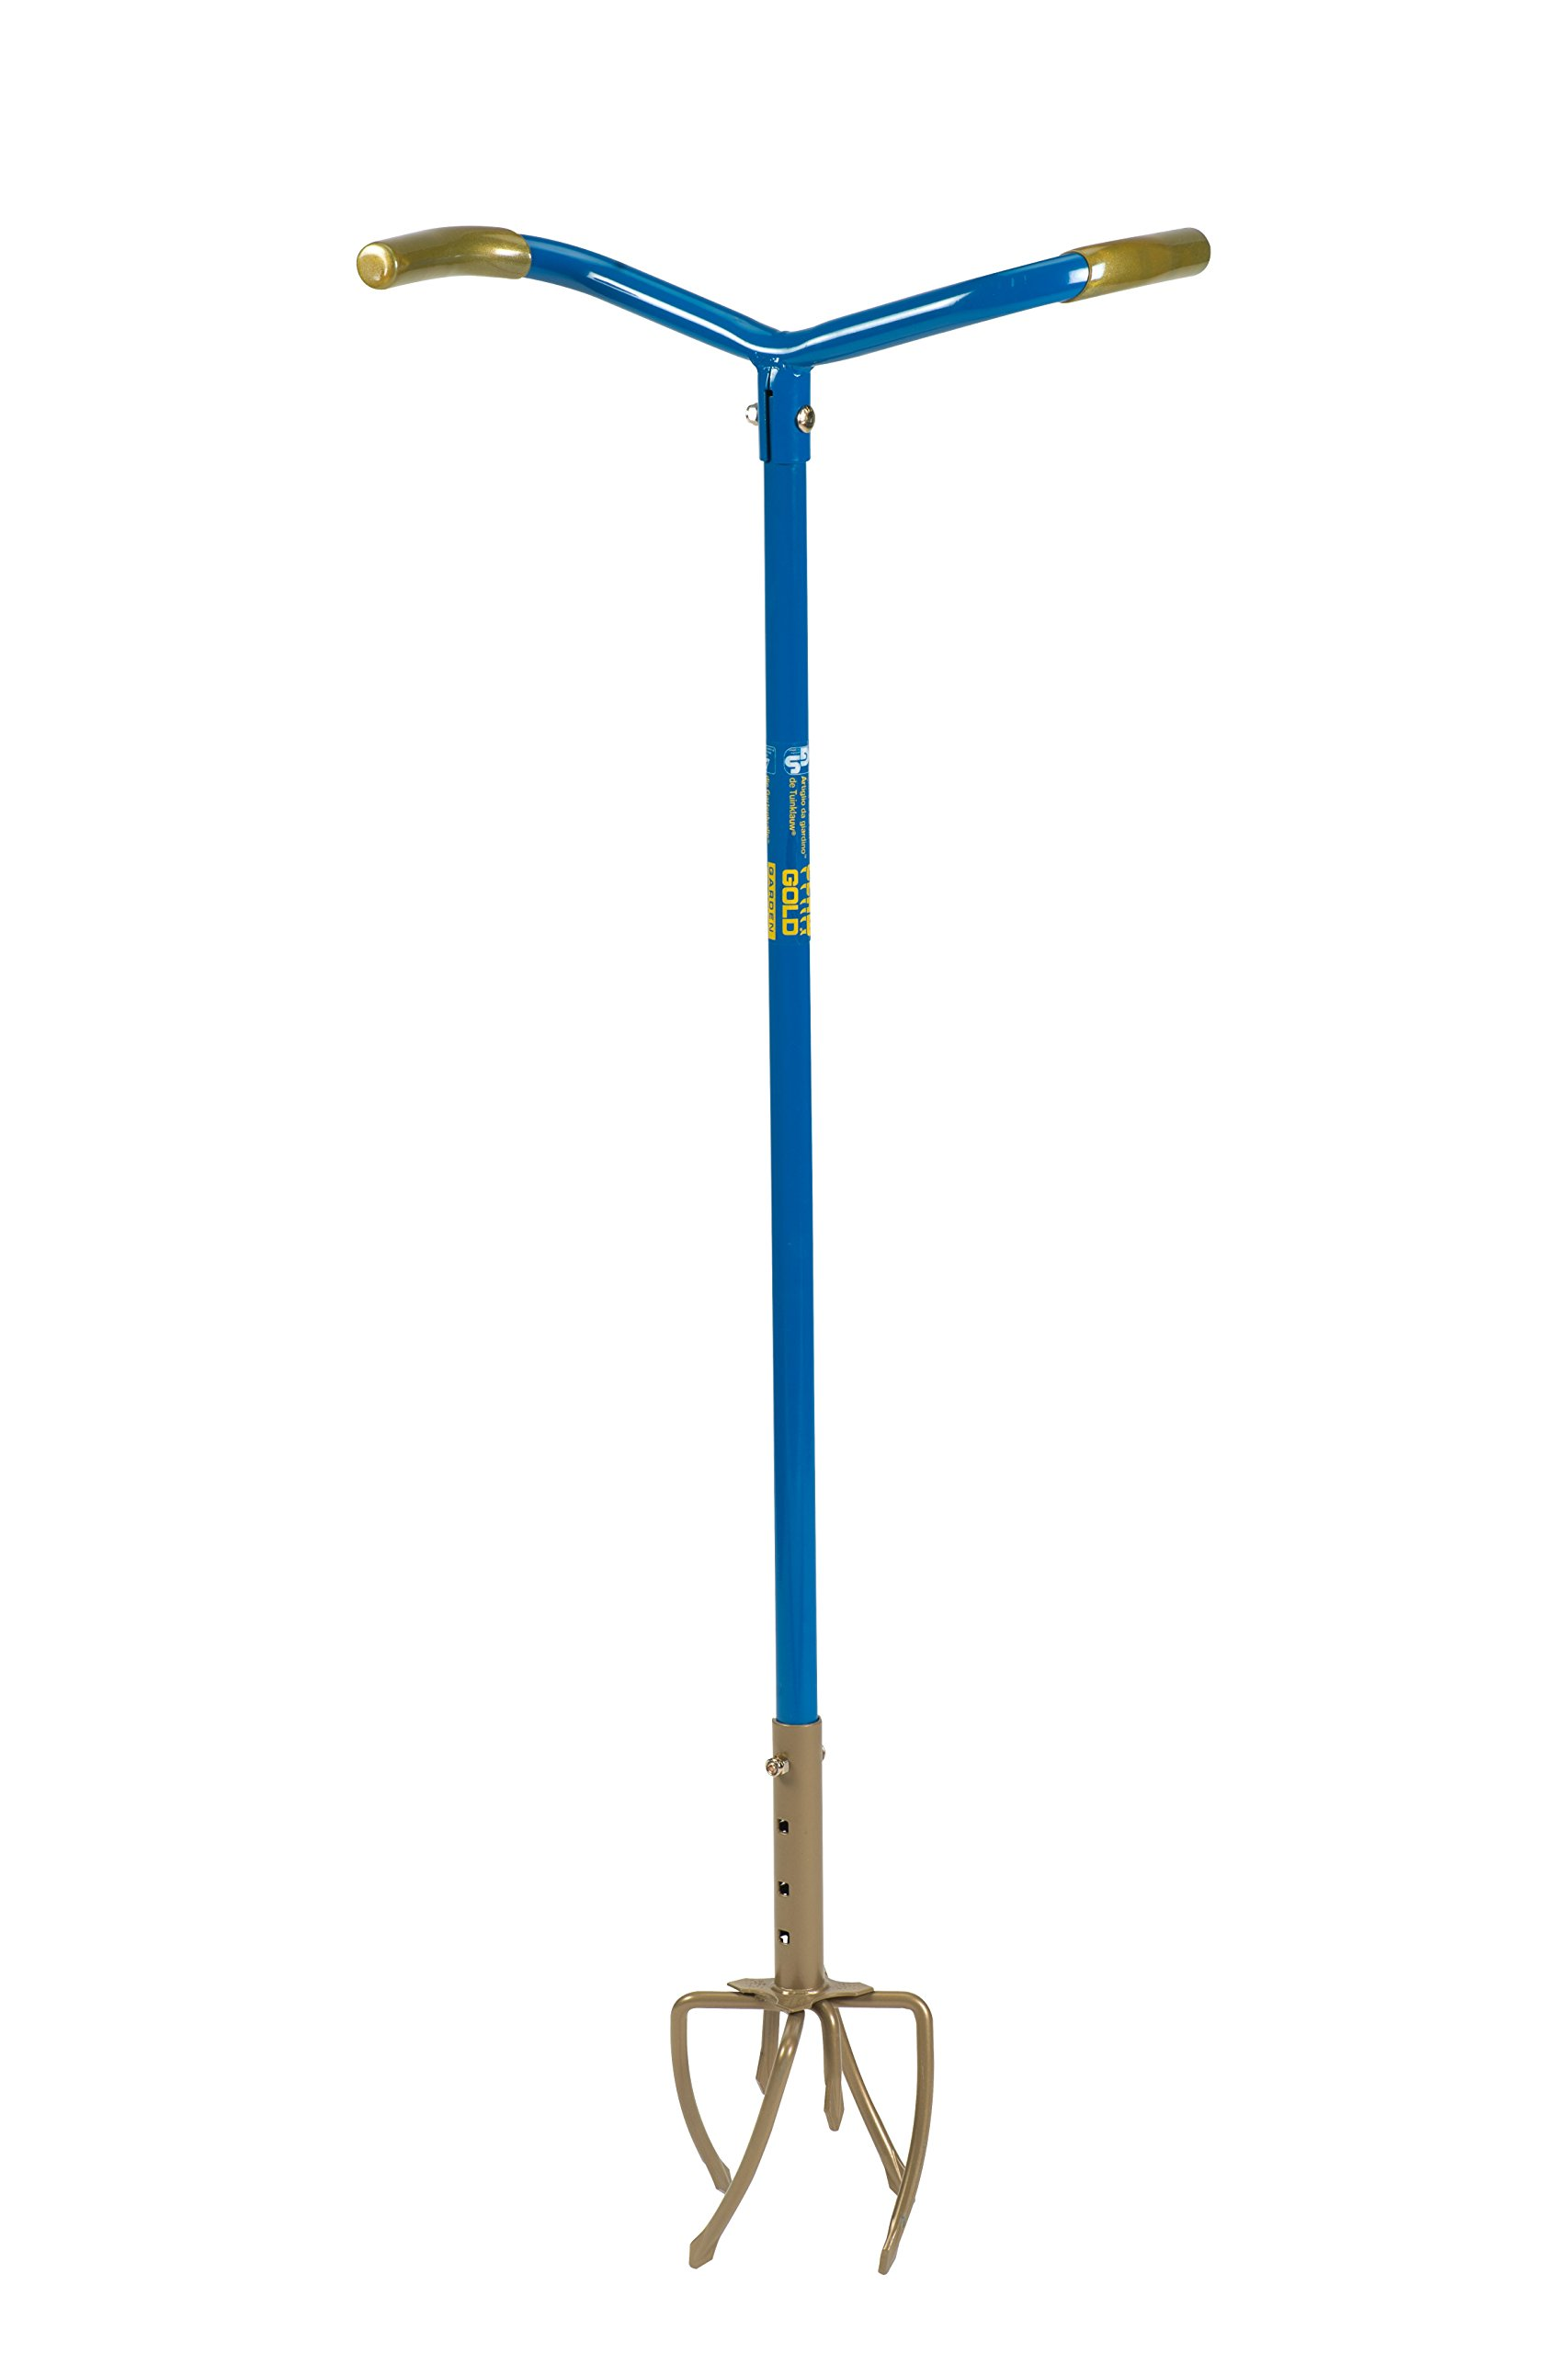 Gartenkralle GC920-06 GardenClaw, gold product image